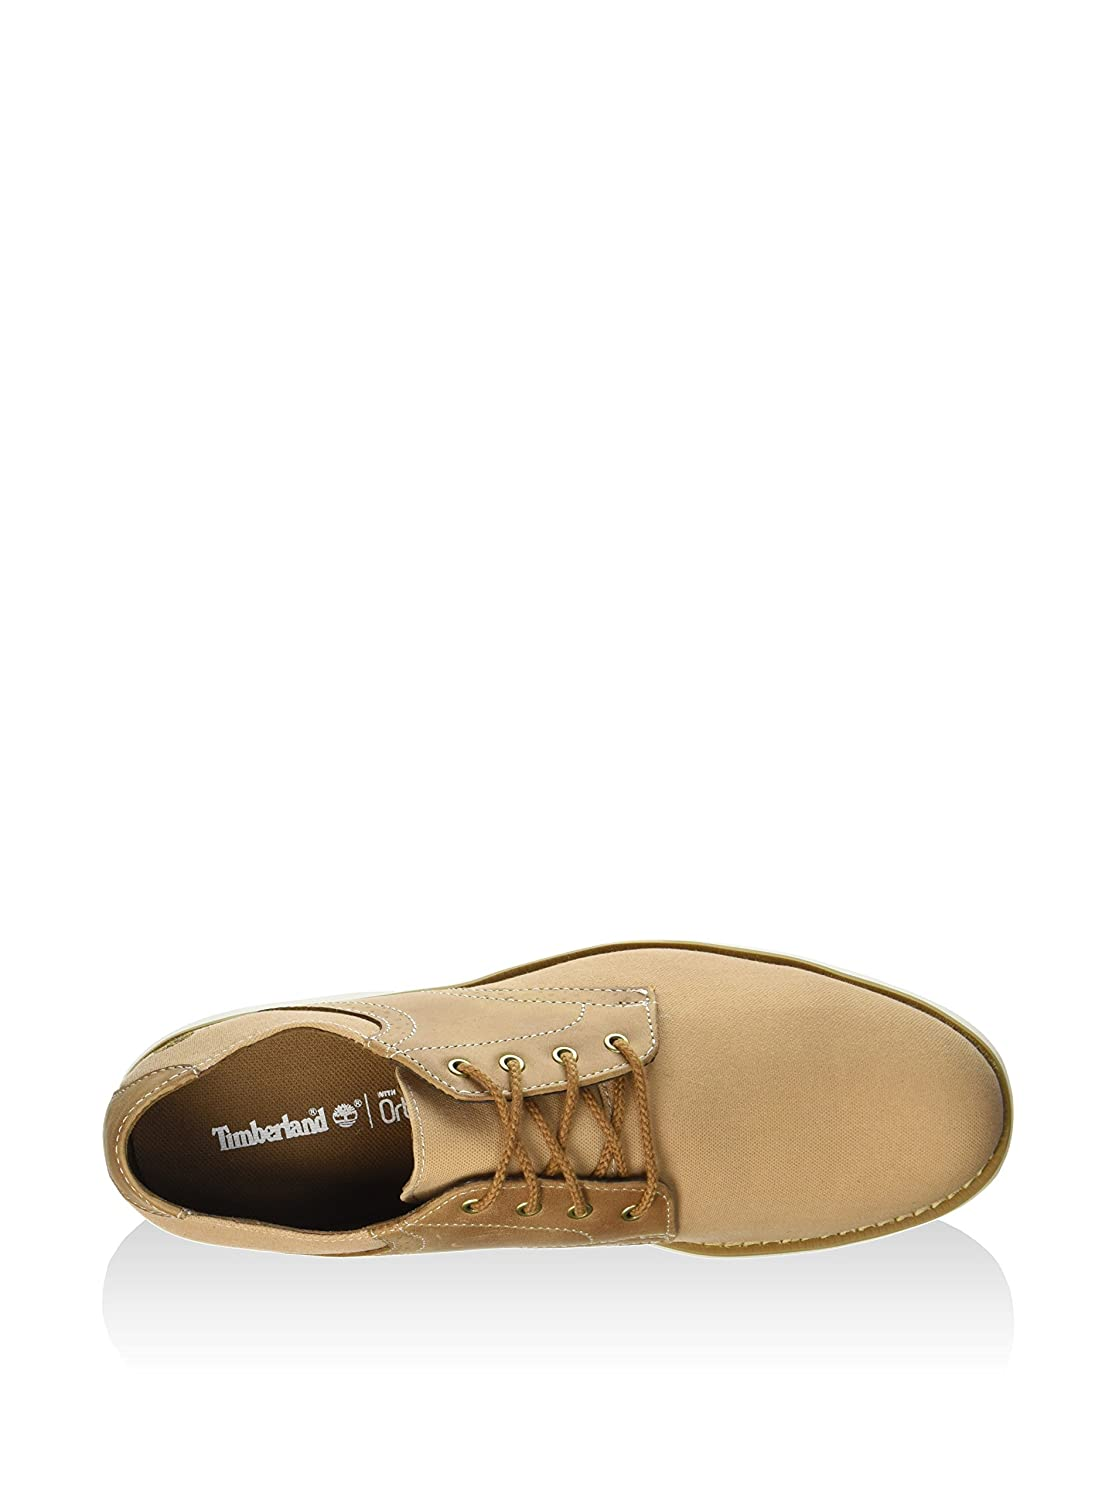 Timberland Mens Stormbuck Lite Saddle Brown LeatherBrogue Loafer Oxford  Shoes: Amazon.co.uk: Shoes & Bags